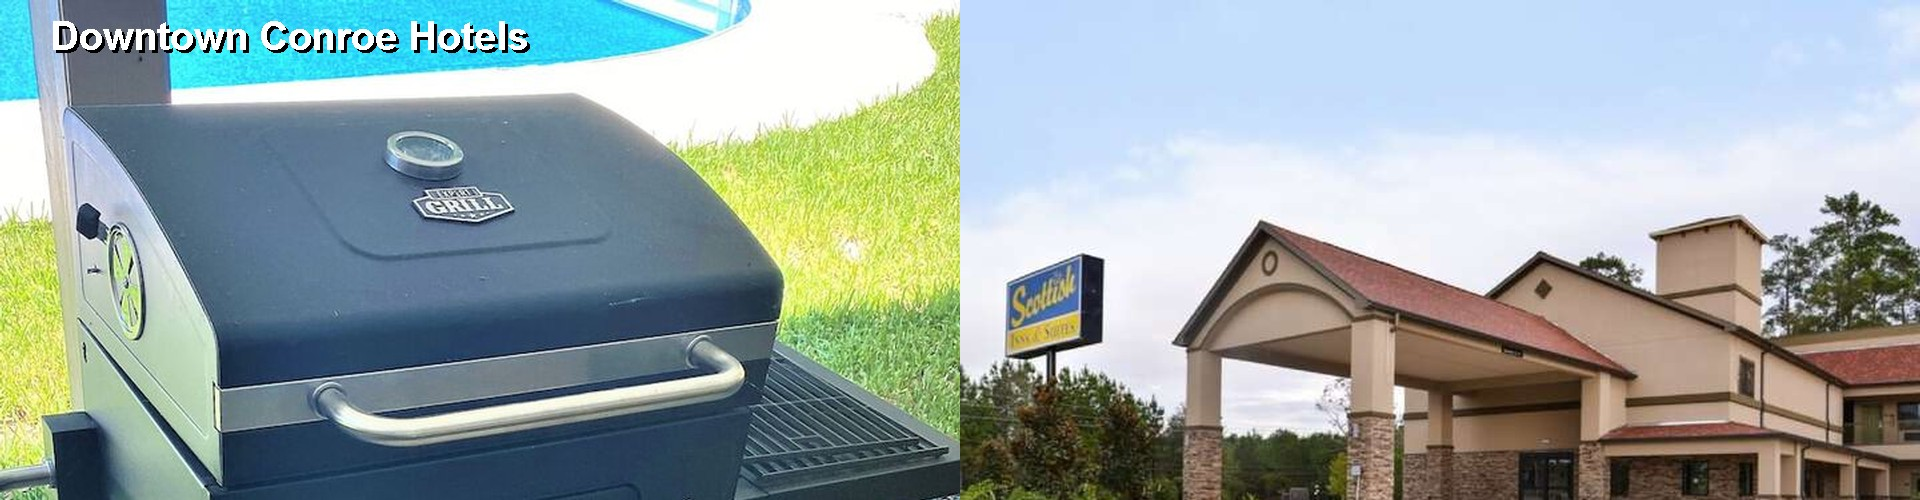 5 Best Hotels near Downtown Conroe